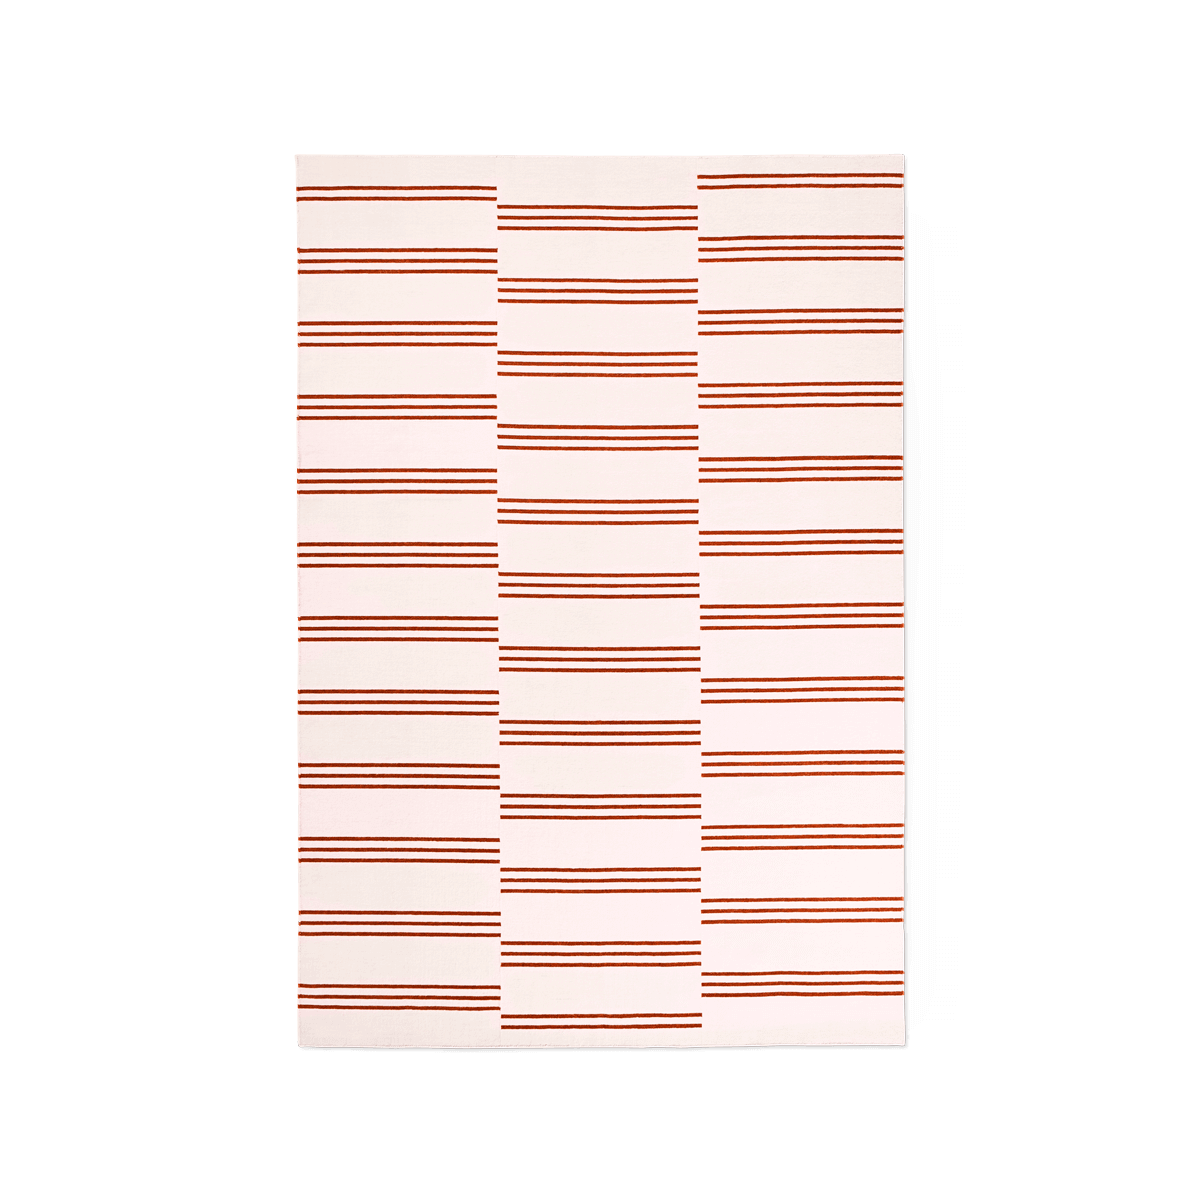 Product image of the flatweave rug Stripes in the color Pink. The rug itself is a pink color with red stripes creating a pattern.